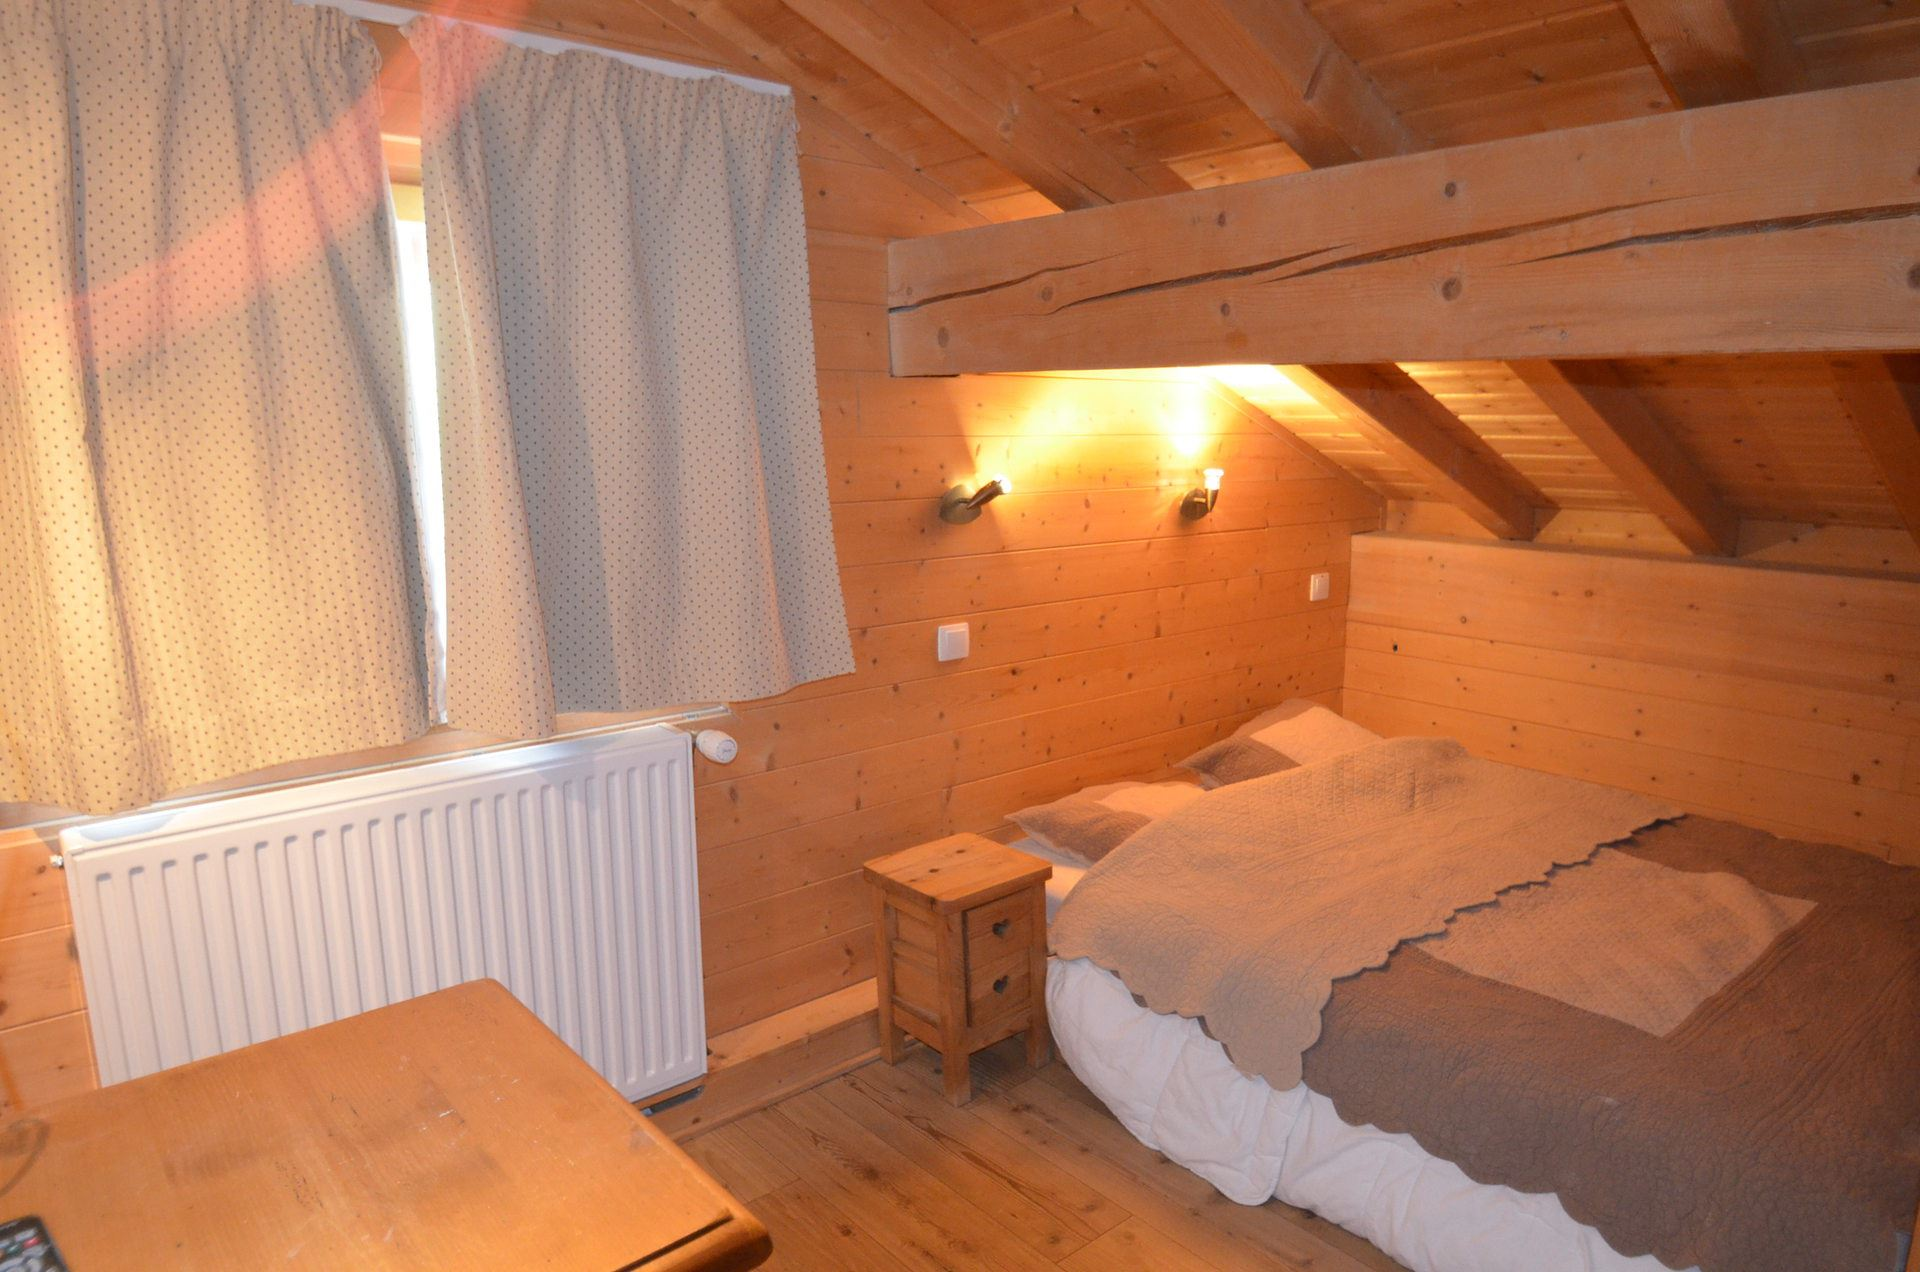 10 Rooms 16/18 Pers / CHALETS DE LA VILLETTE 12